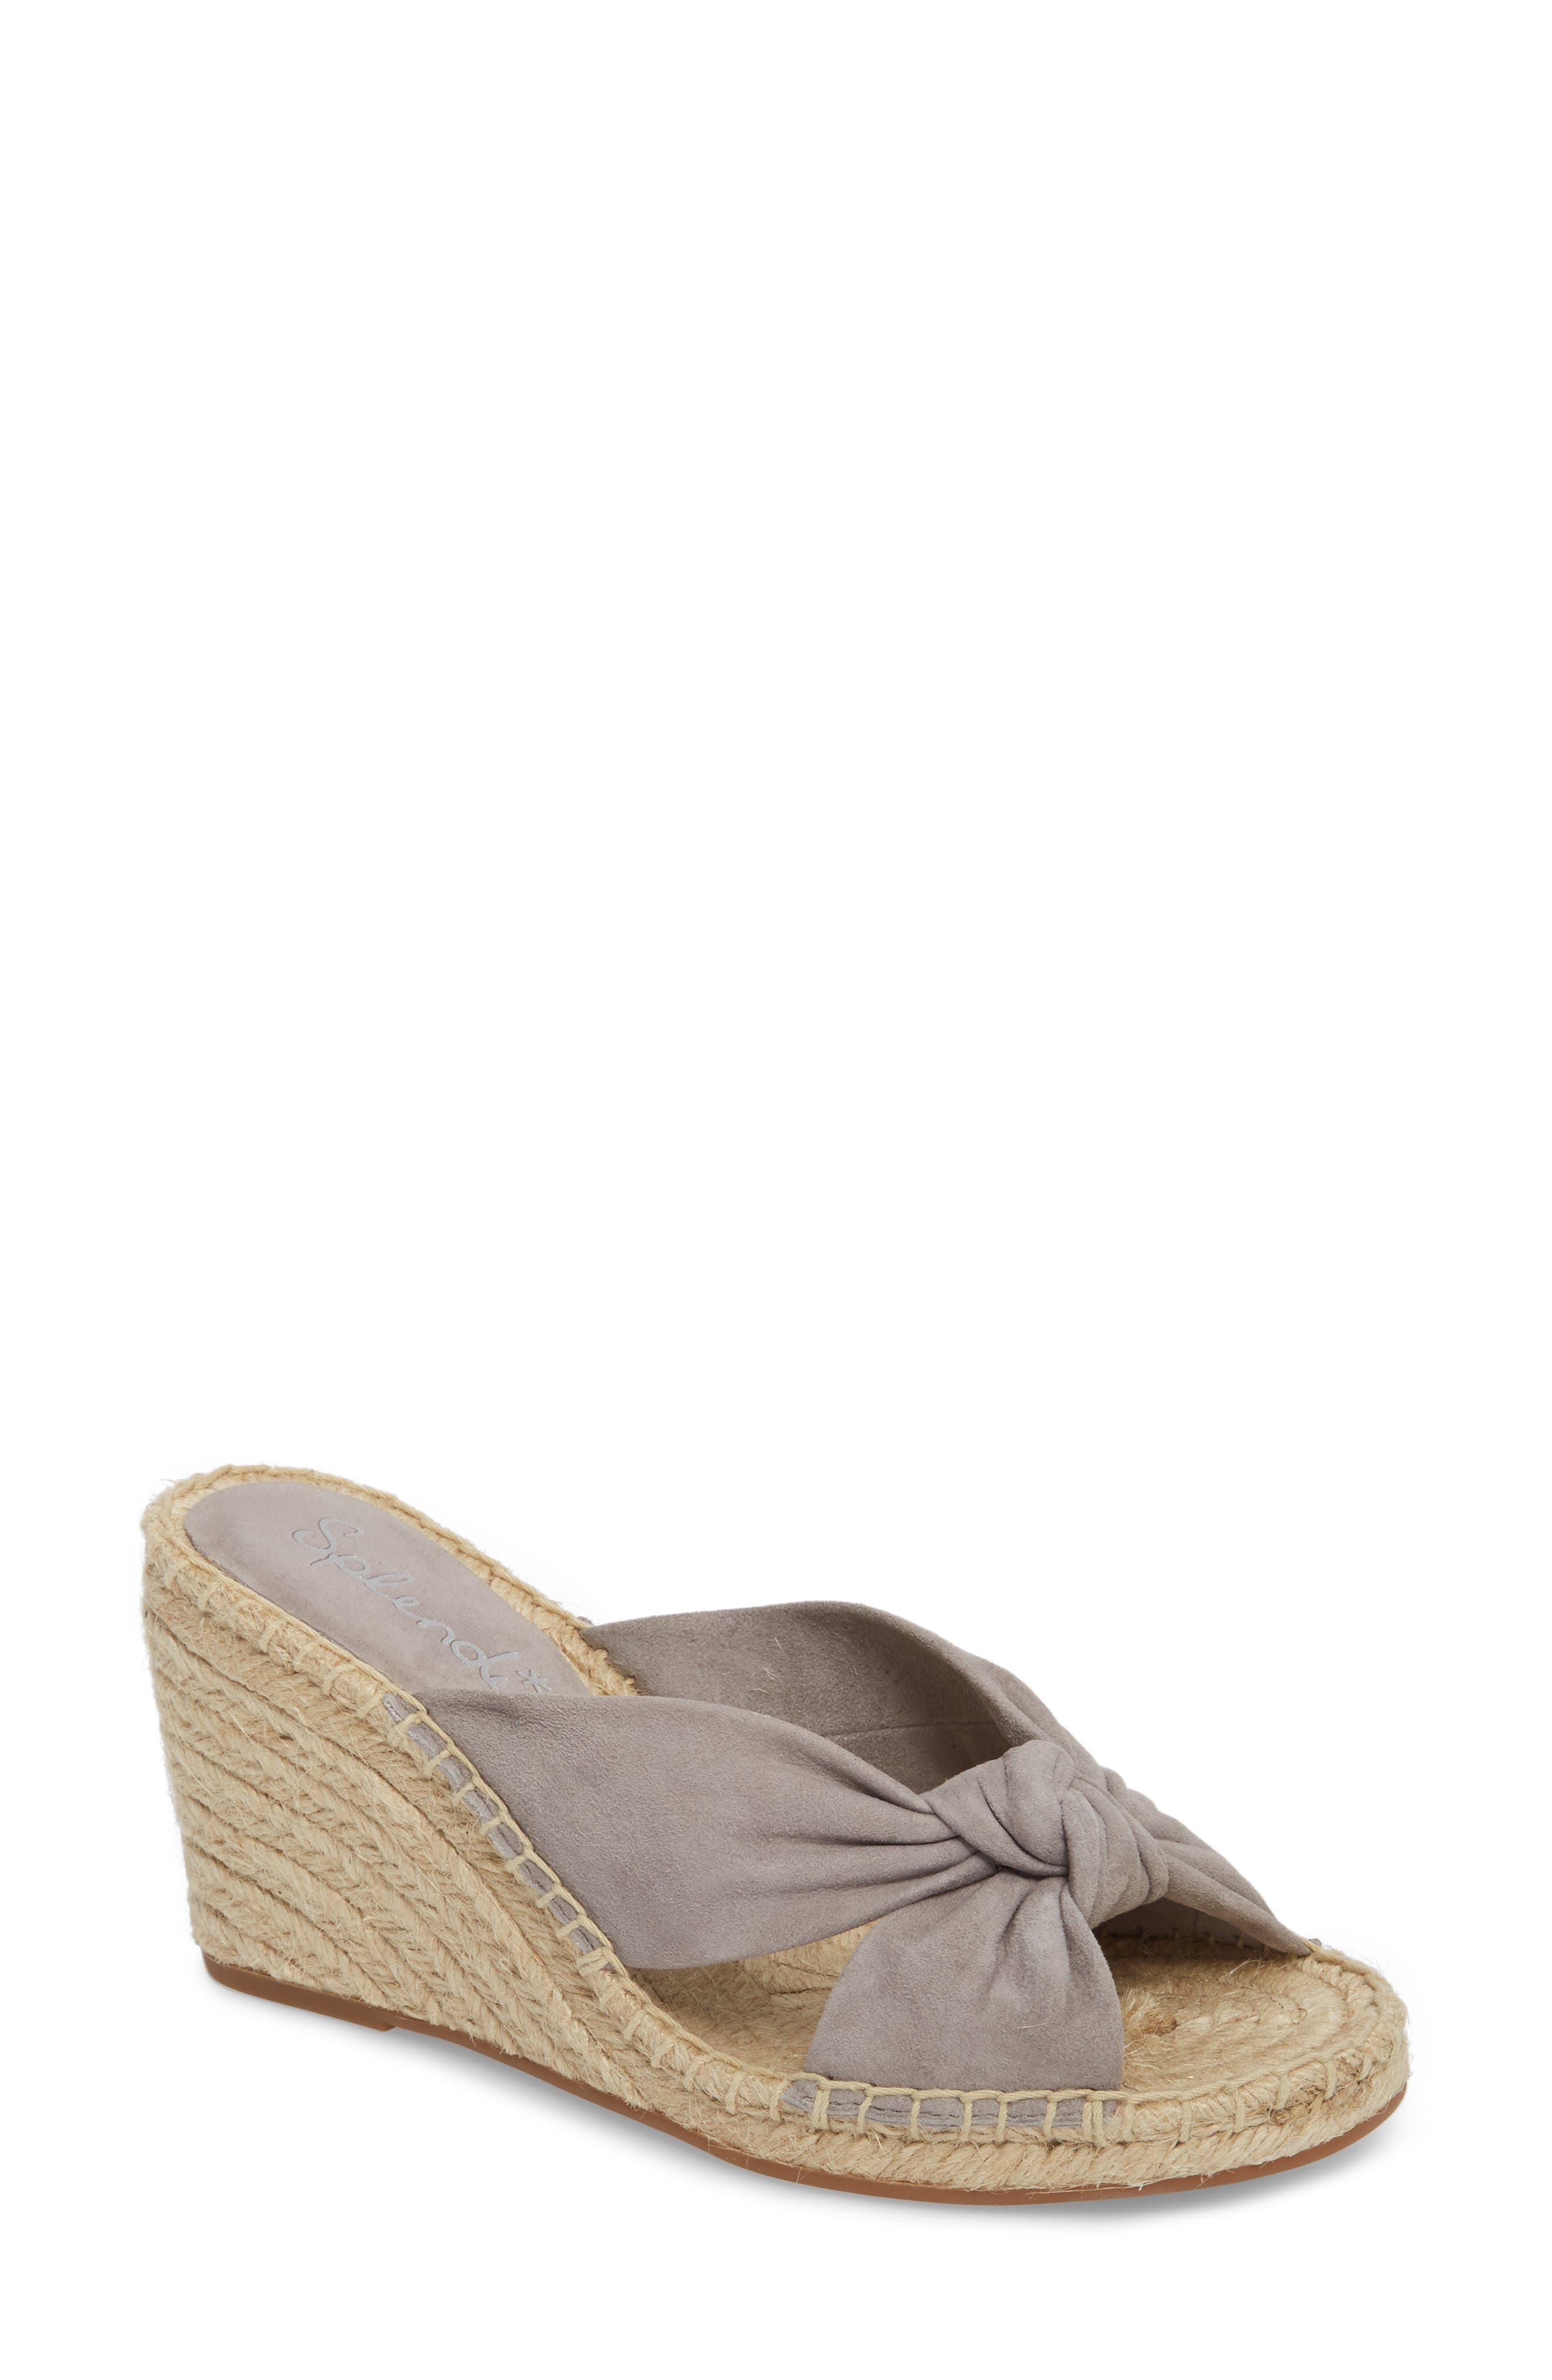 SPLENDID,                             Bautista Knotted Wedge Sandal,                             Main thumbnail 1, color,                             053